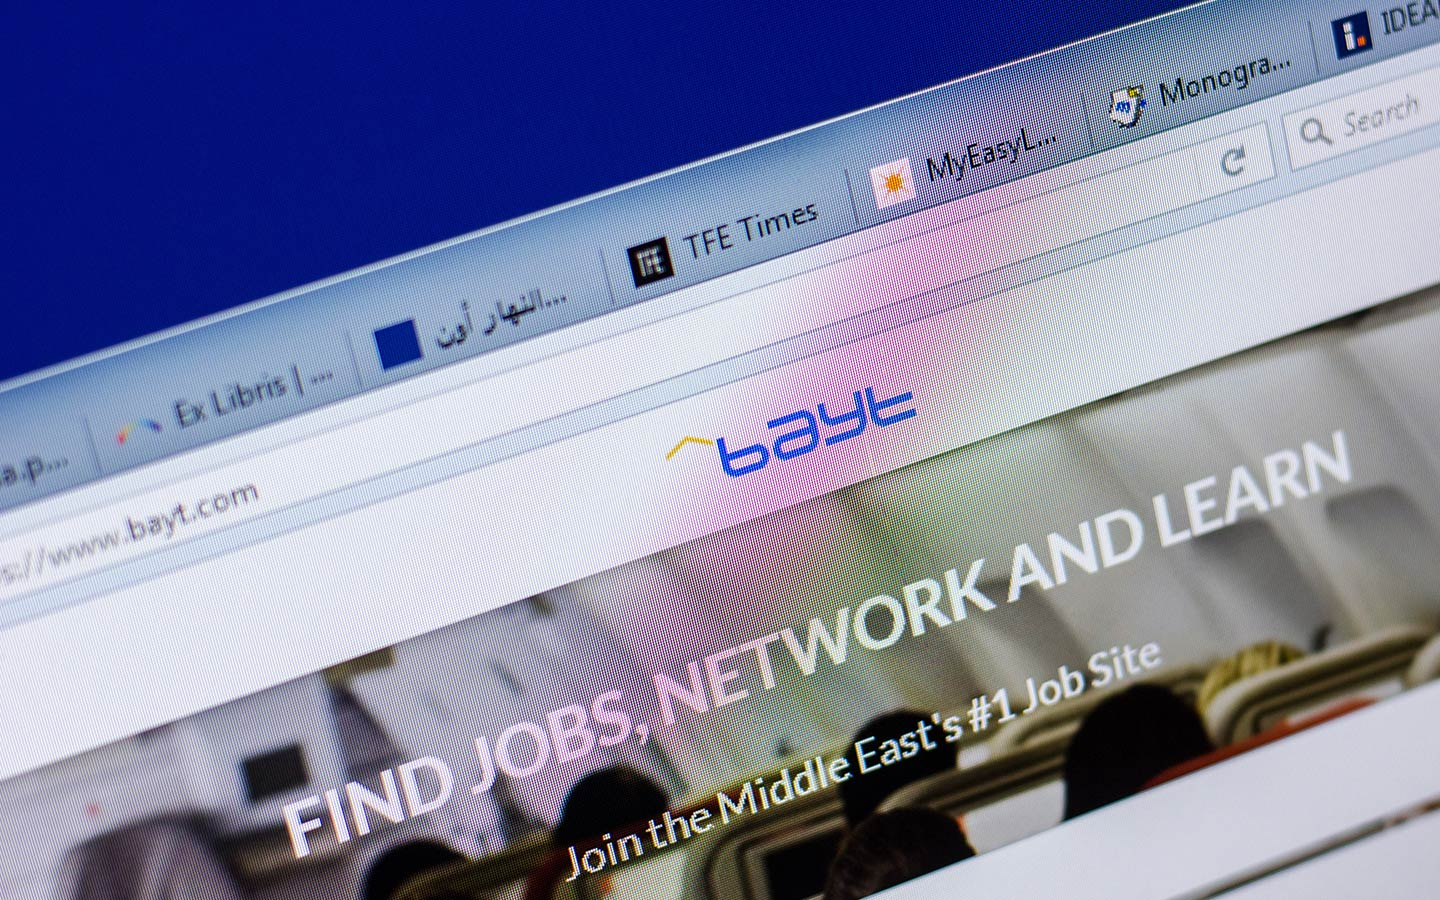 Bayt's website can be used t o find jobs in Dubai